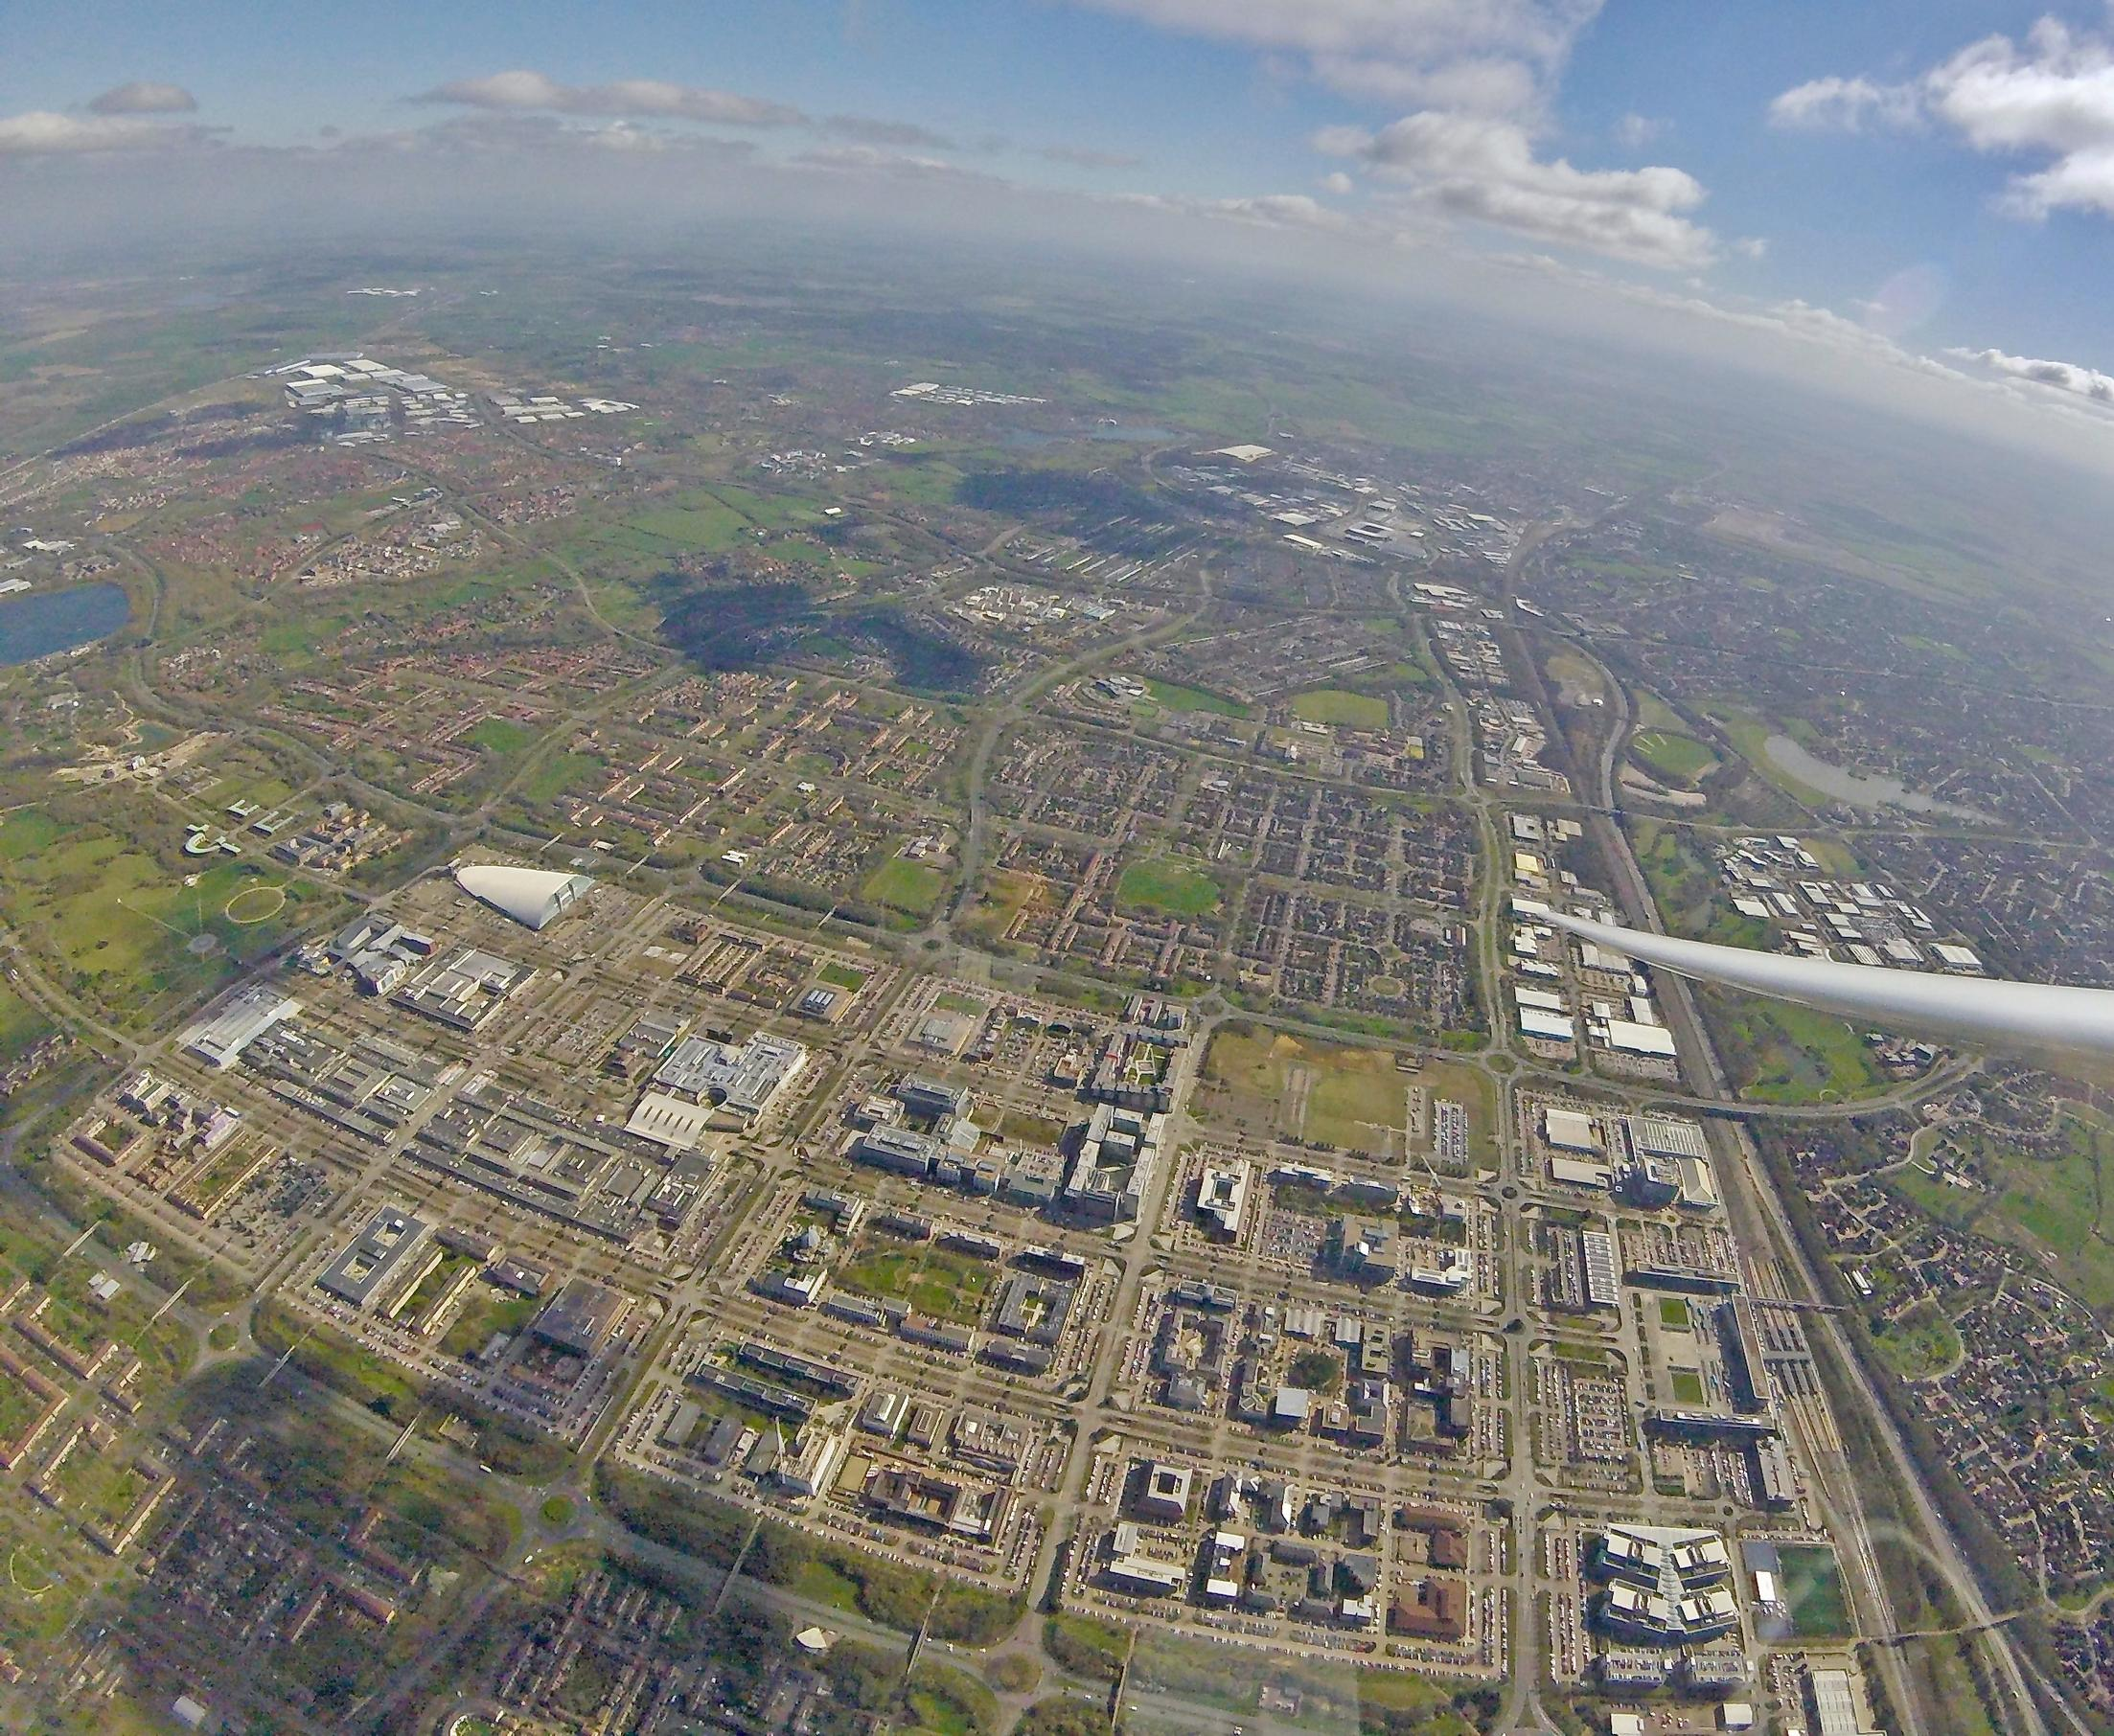 Milton Keynes: masterminded by a development corporation